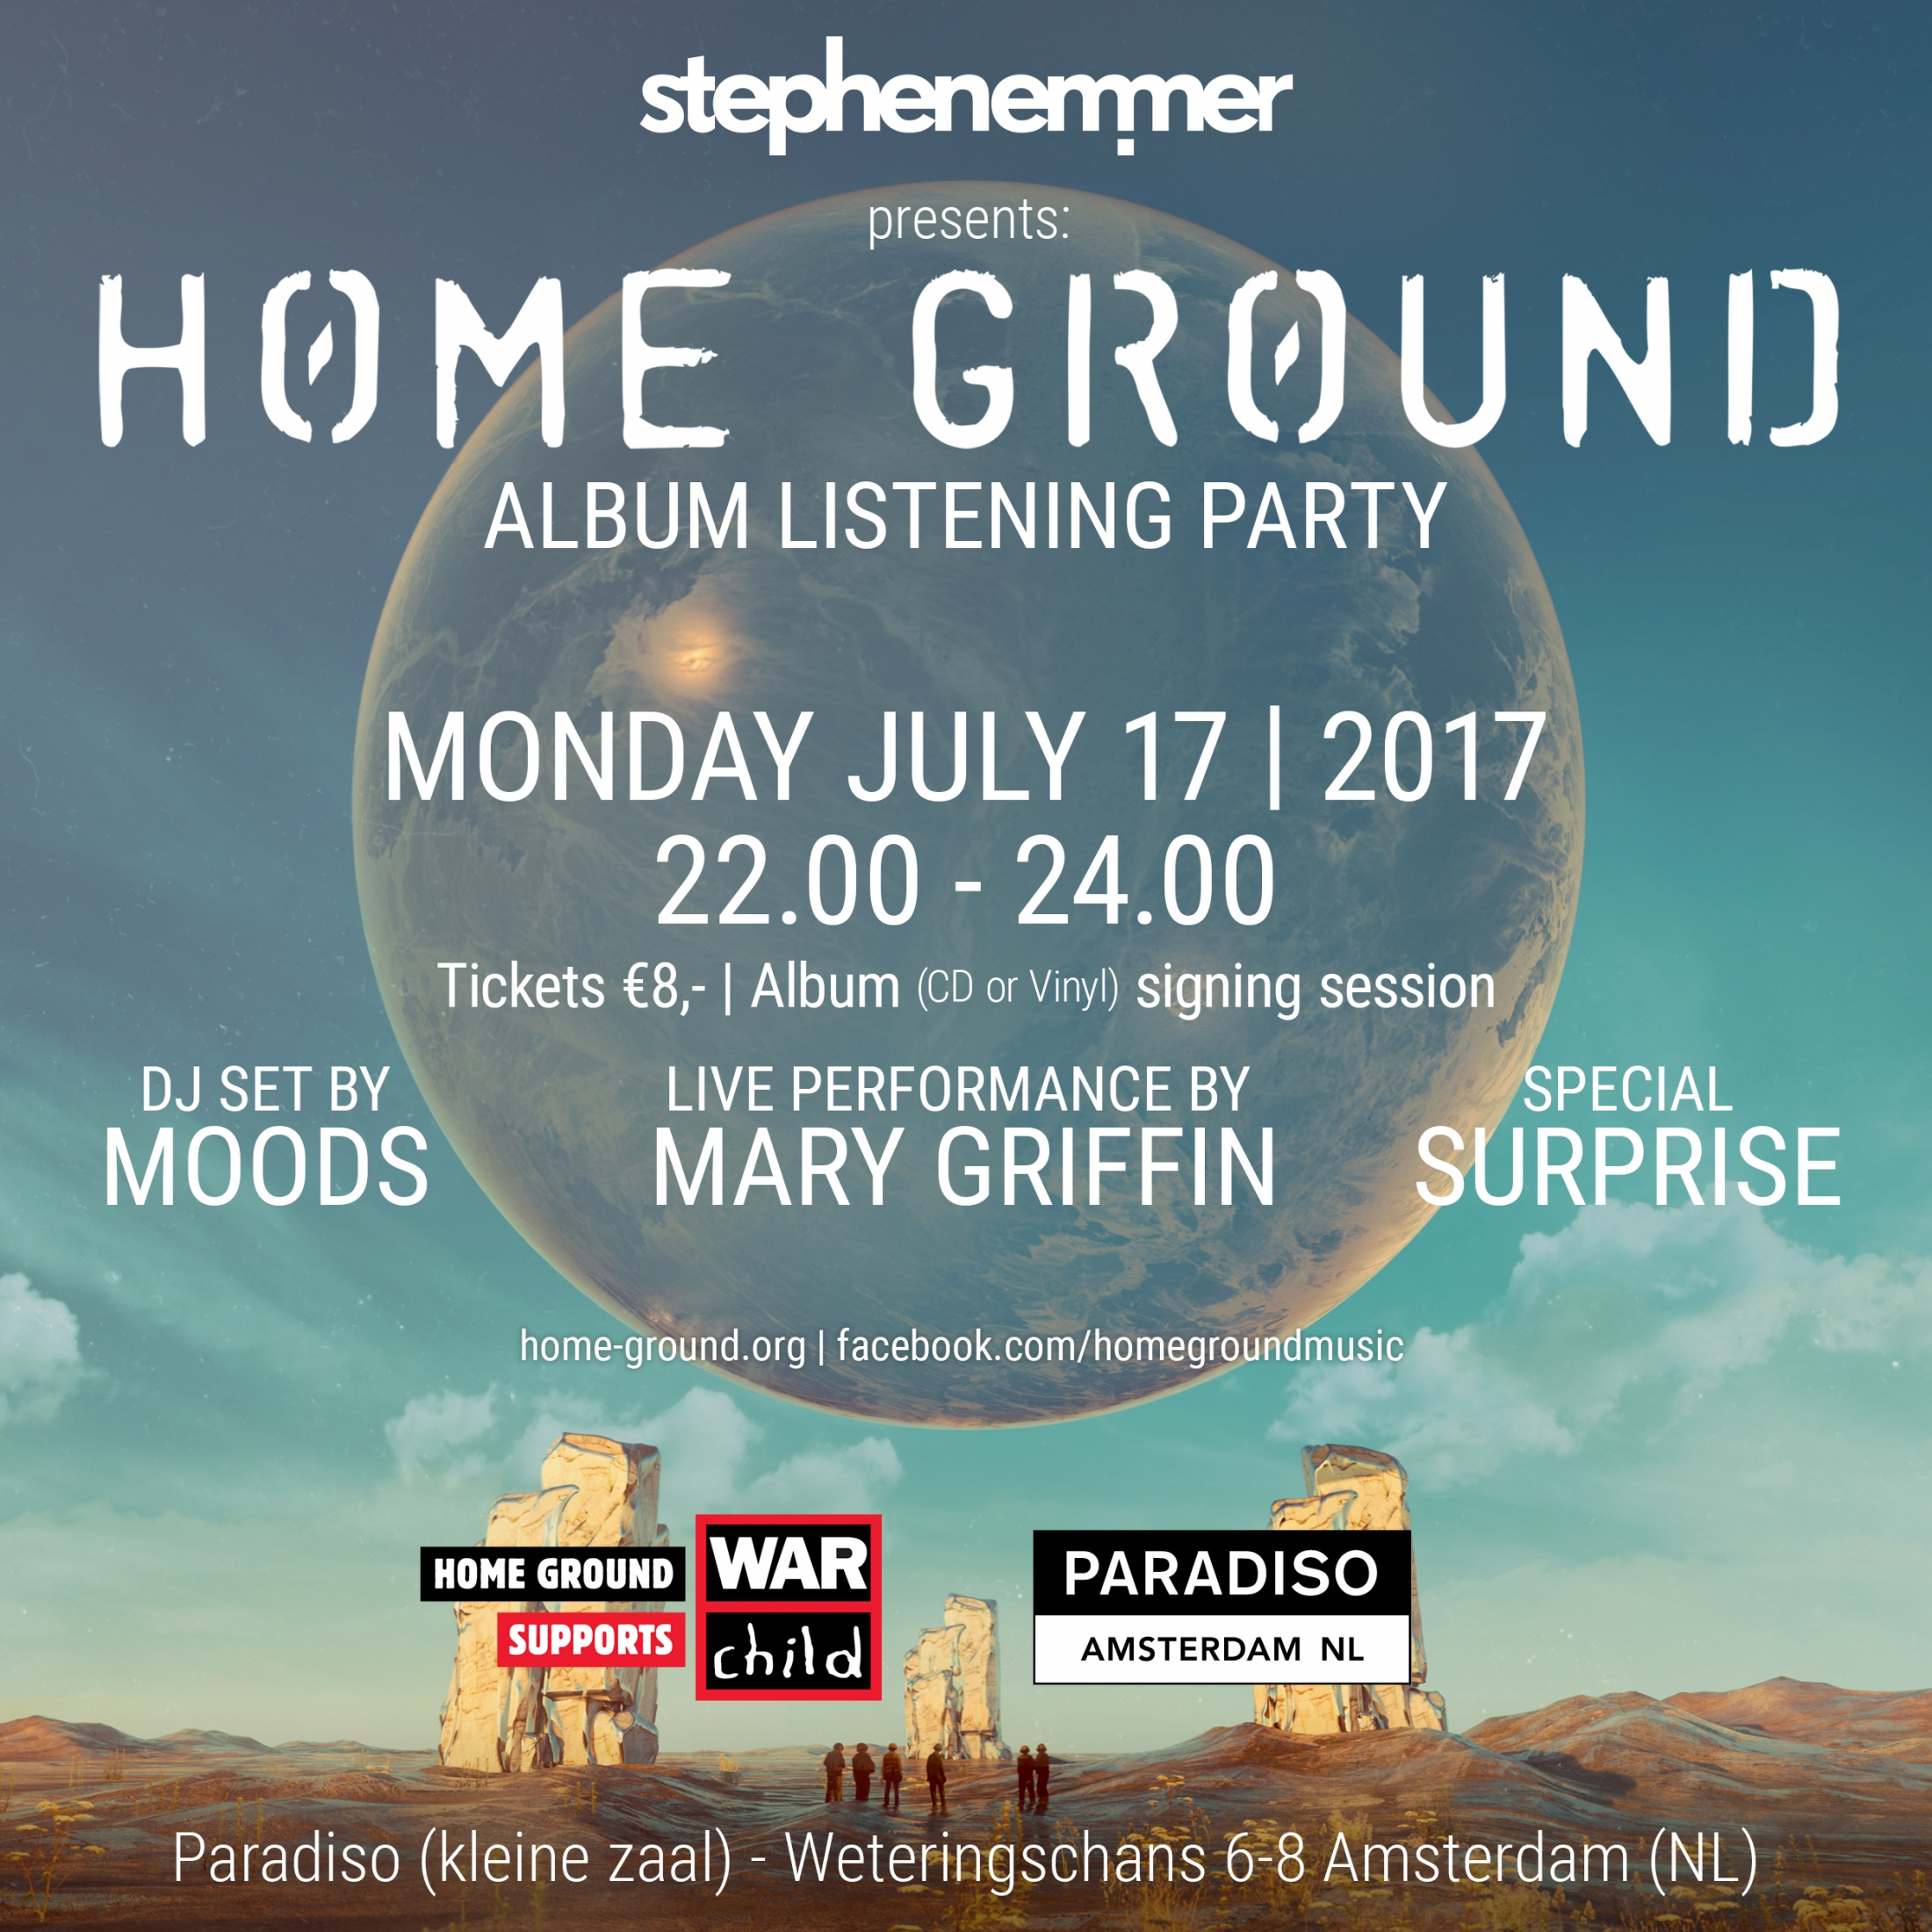 Stephen Emmer presents Home Ground in Amsterdam